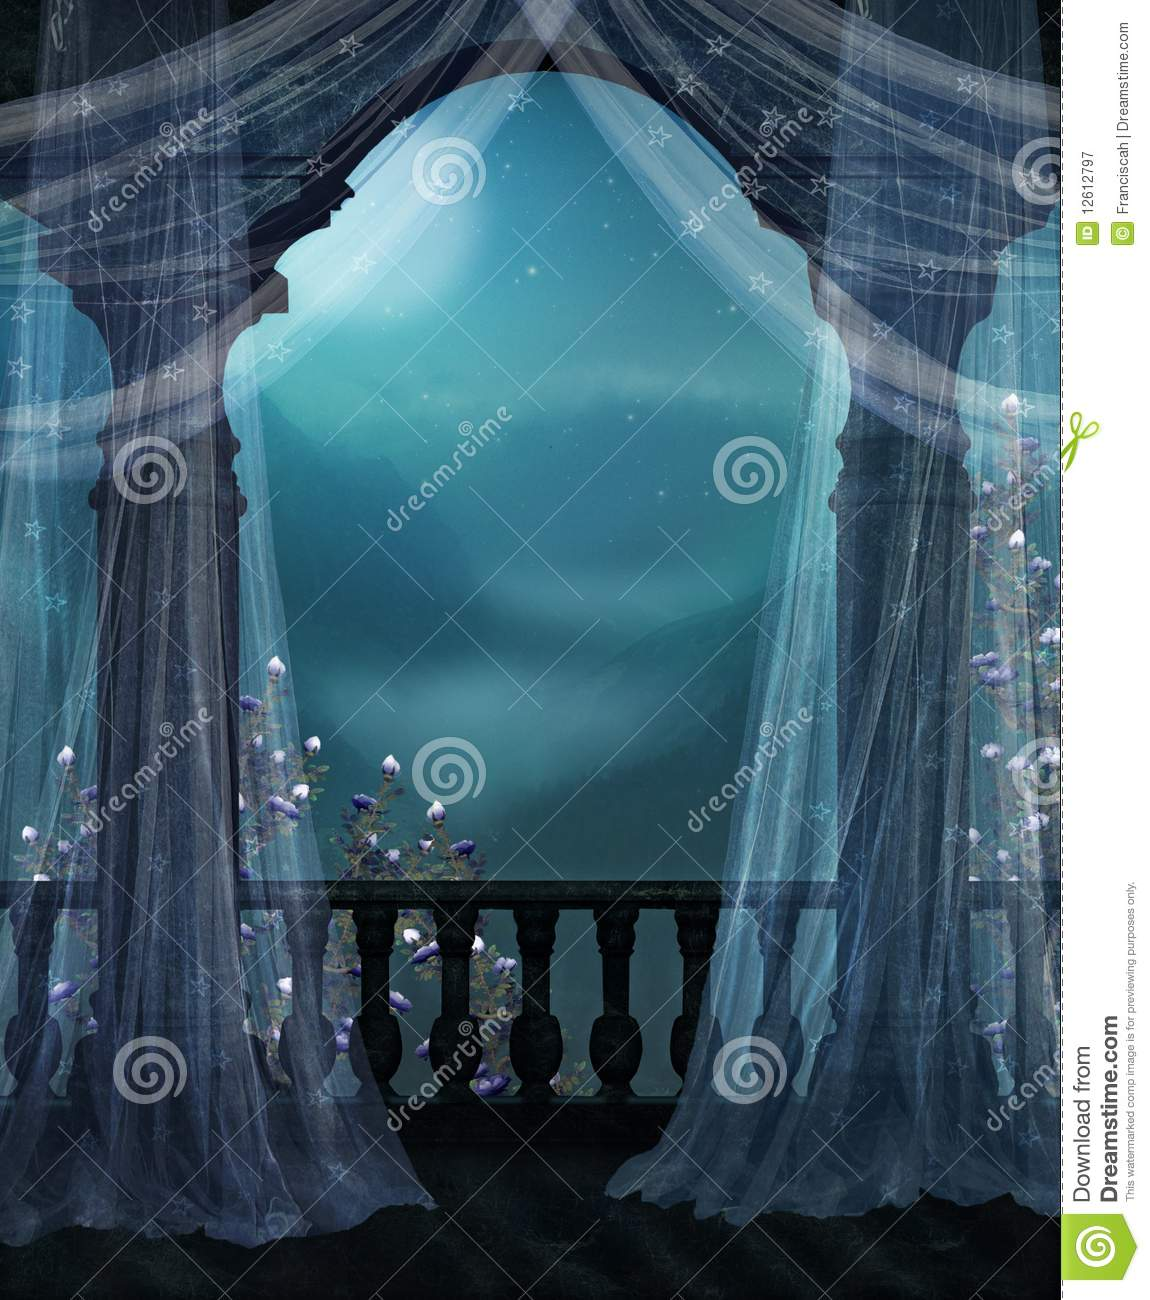 Balcony at night royalty free stock photography image for Balcony at night